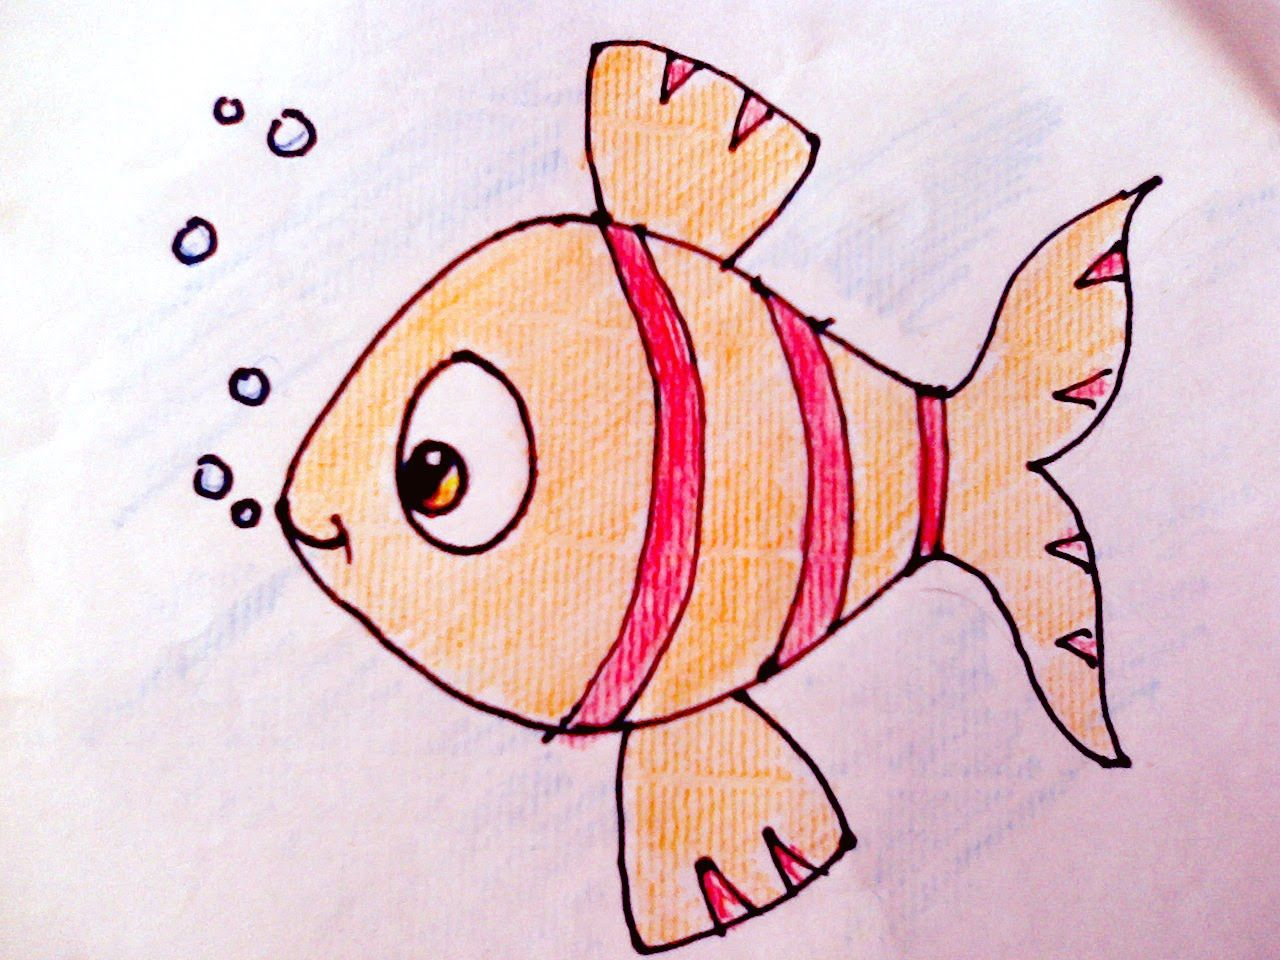 Drawing How To Draw Fish And Colour For Kids Art Youtube Fish Sketch Fish Drawings Fish Drawing For Kids